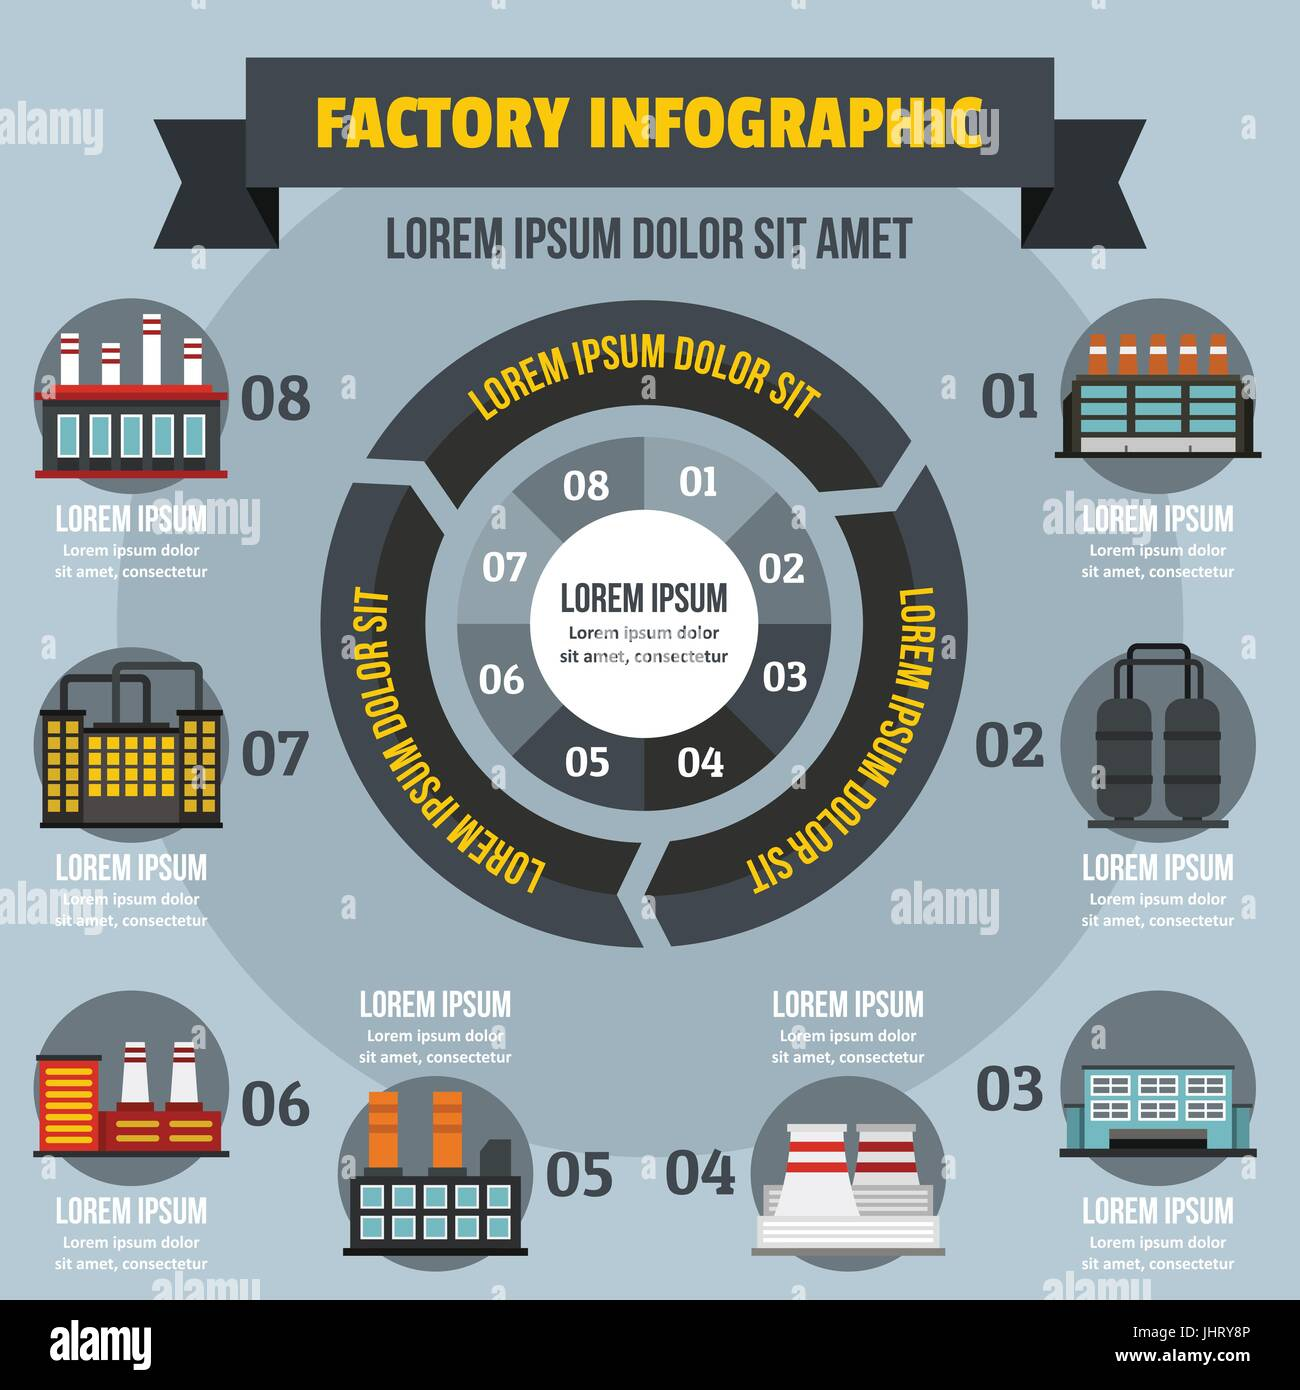 Factory infographic concept, flat style - Stock Image